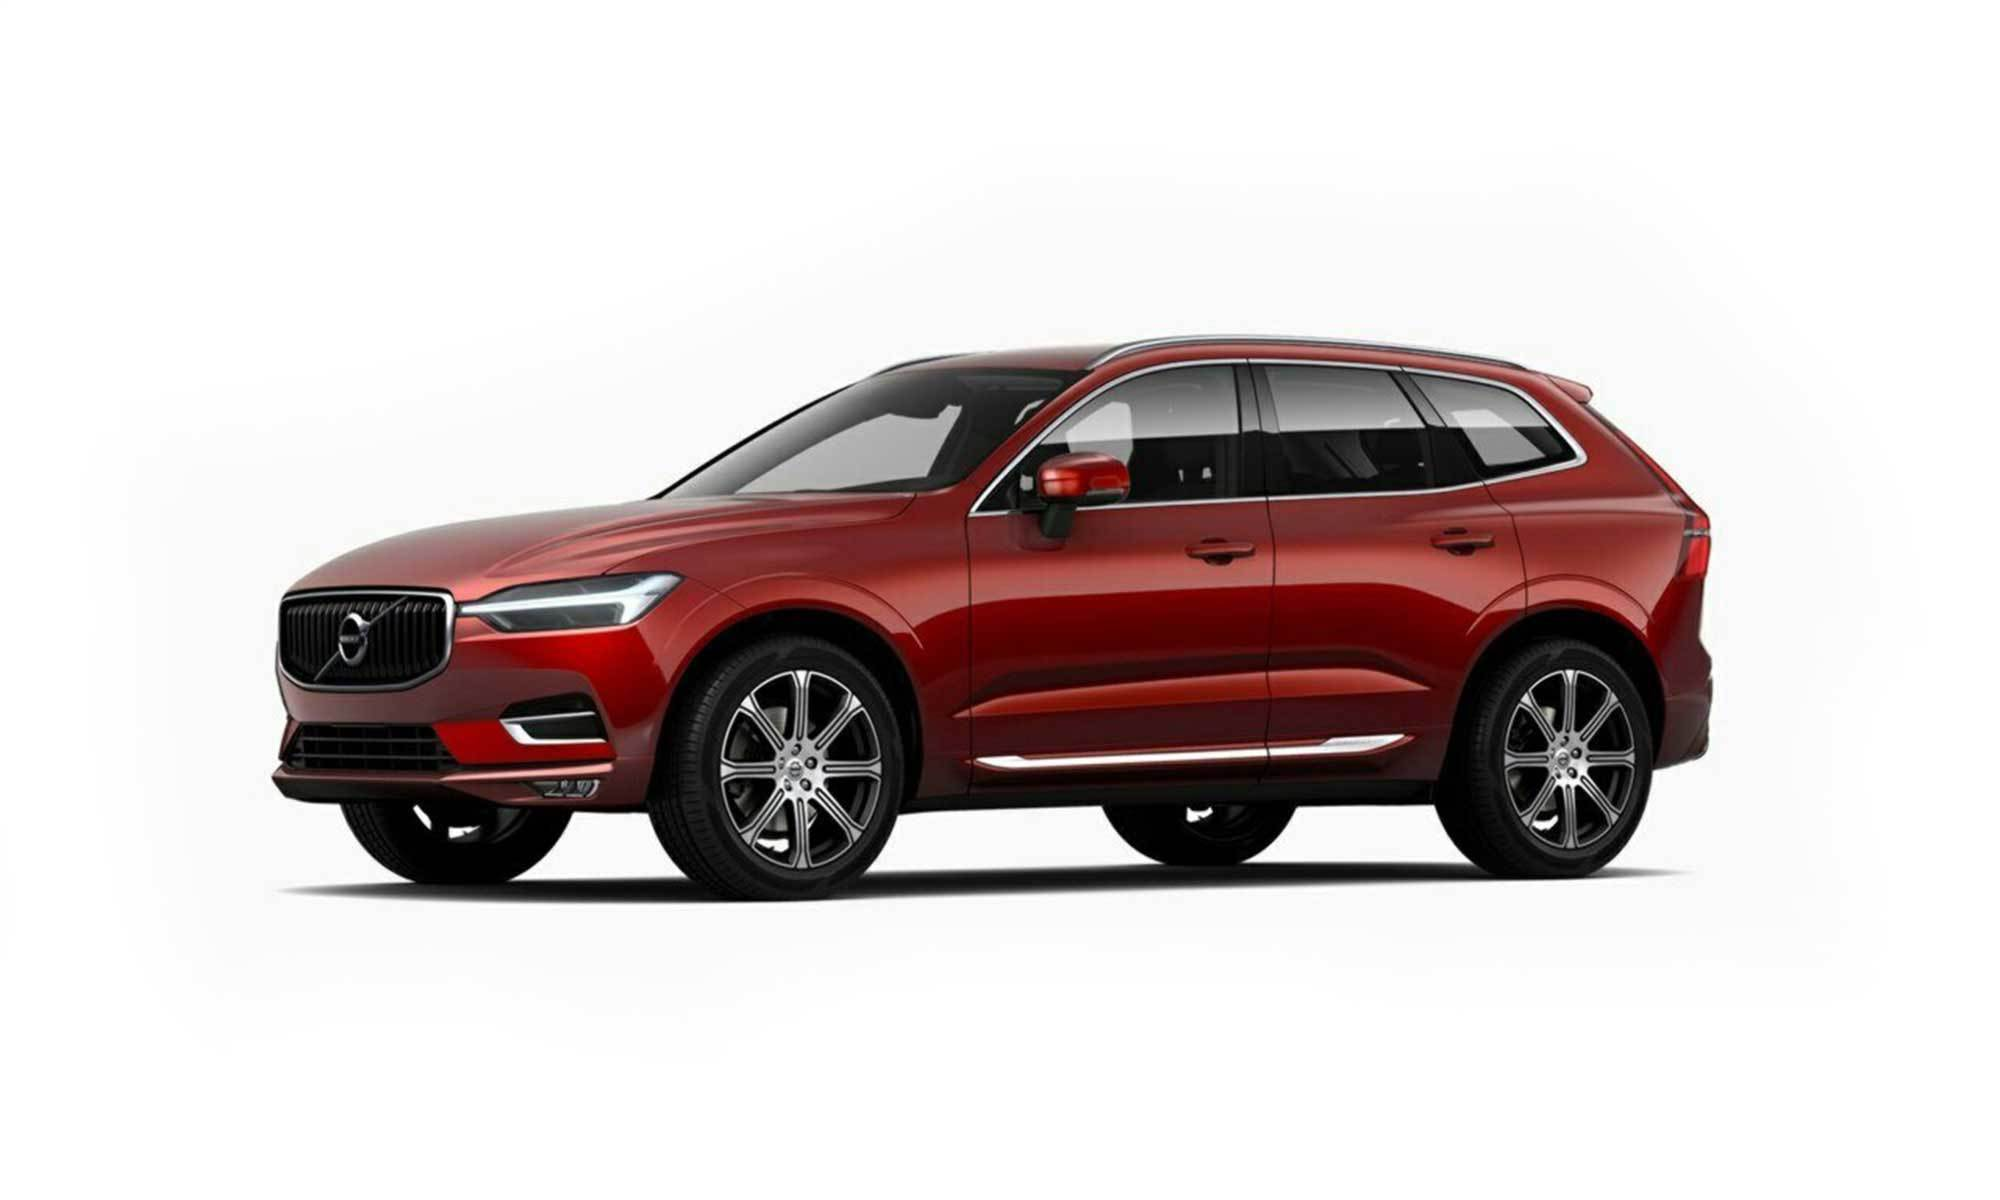 Xc60 White Background 2